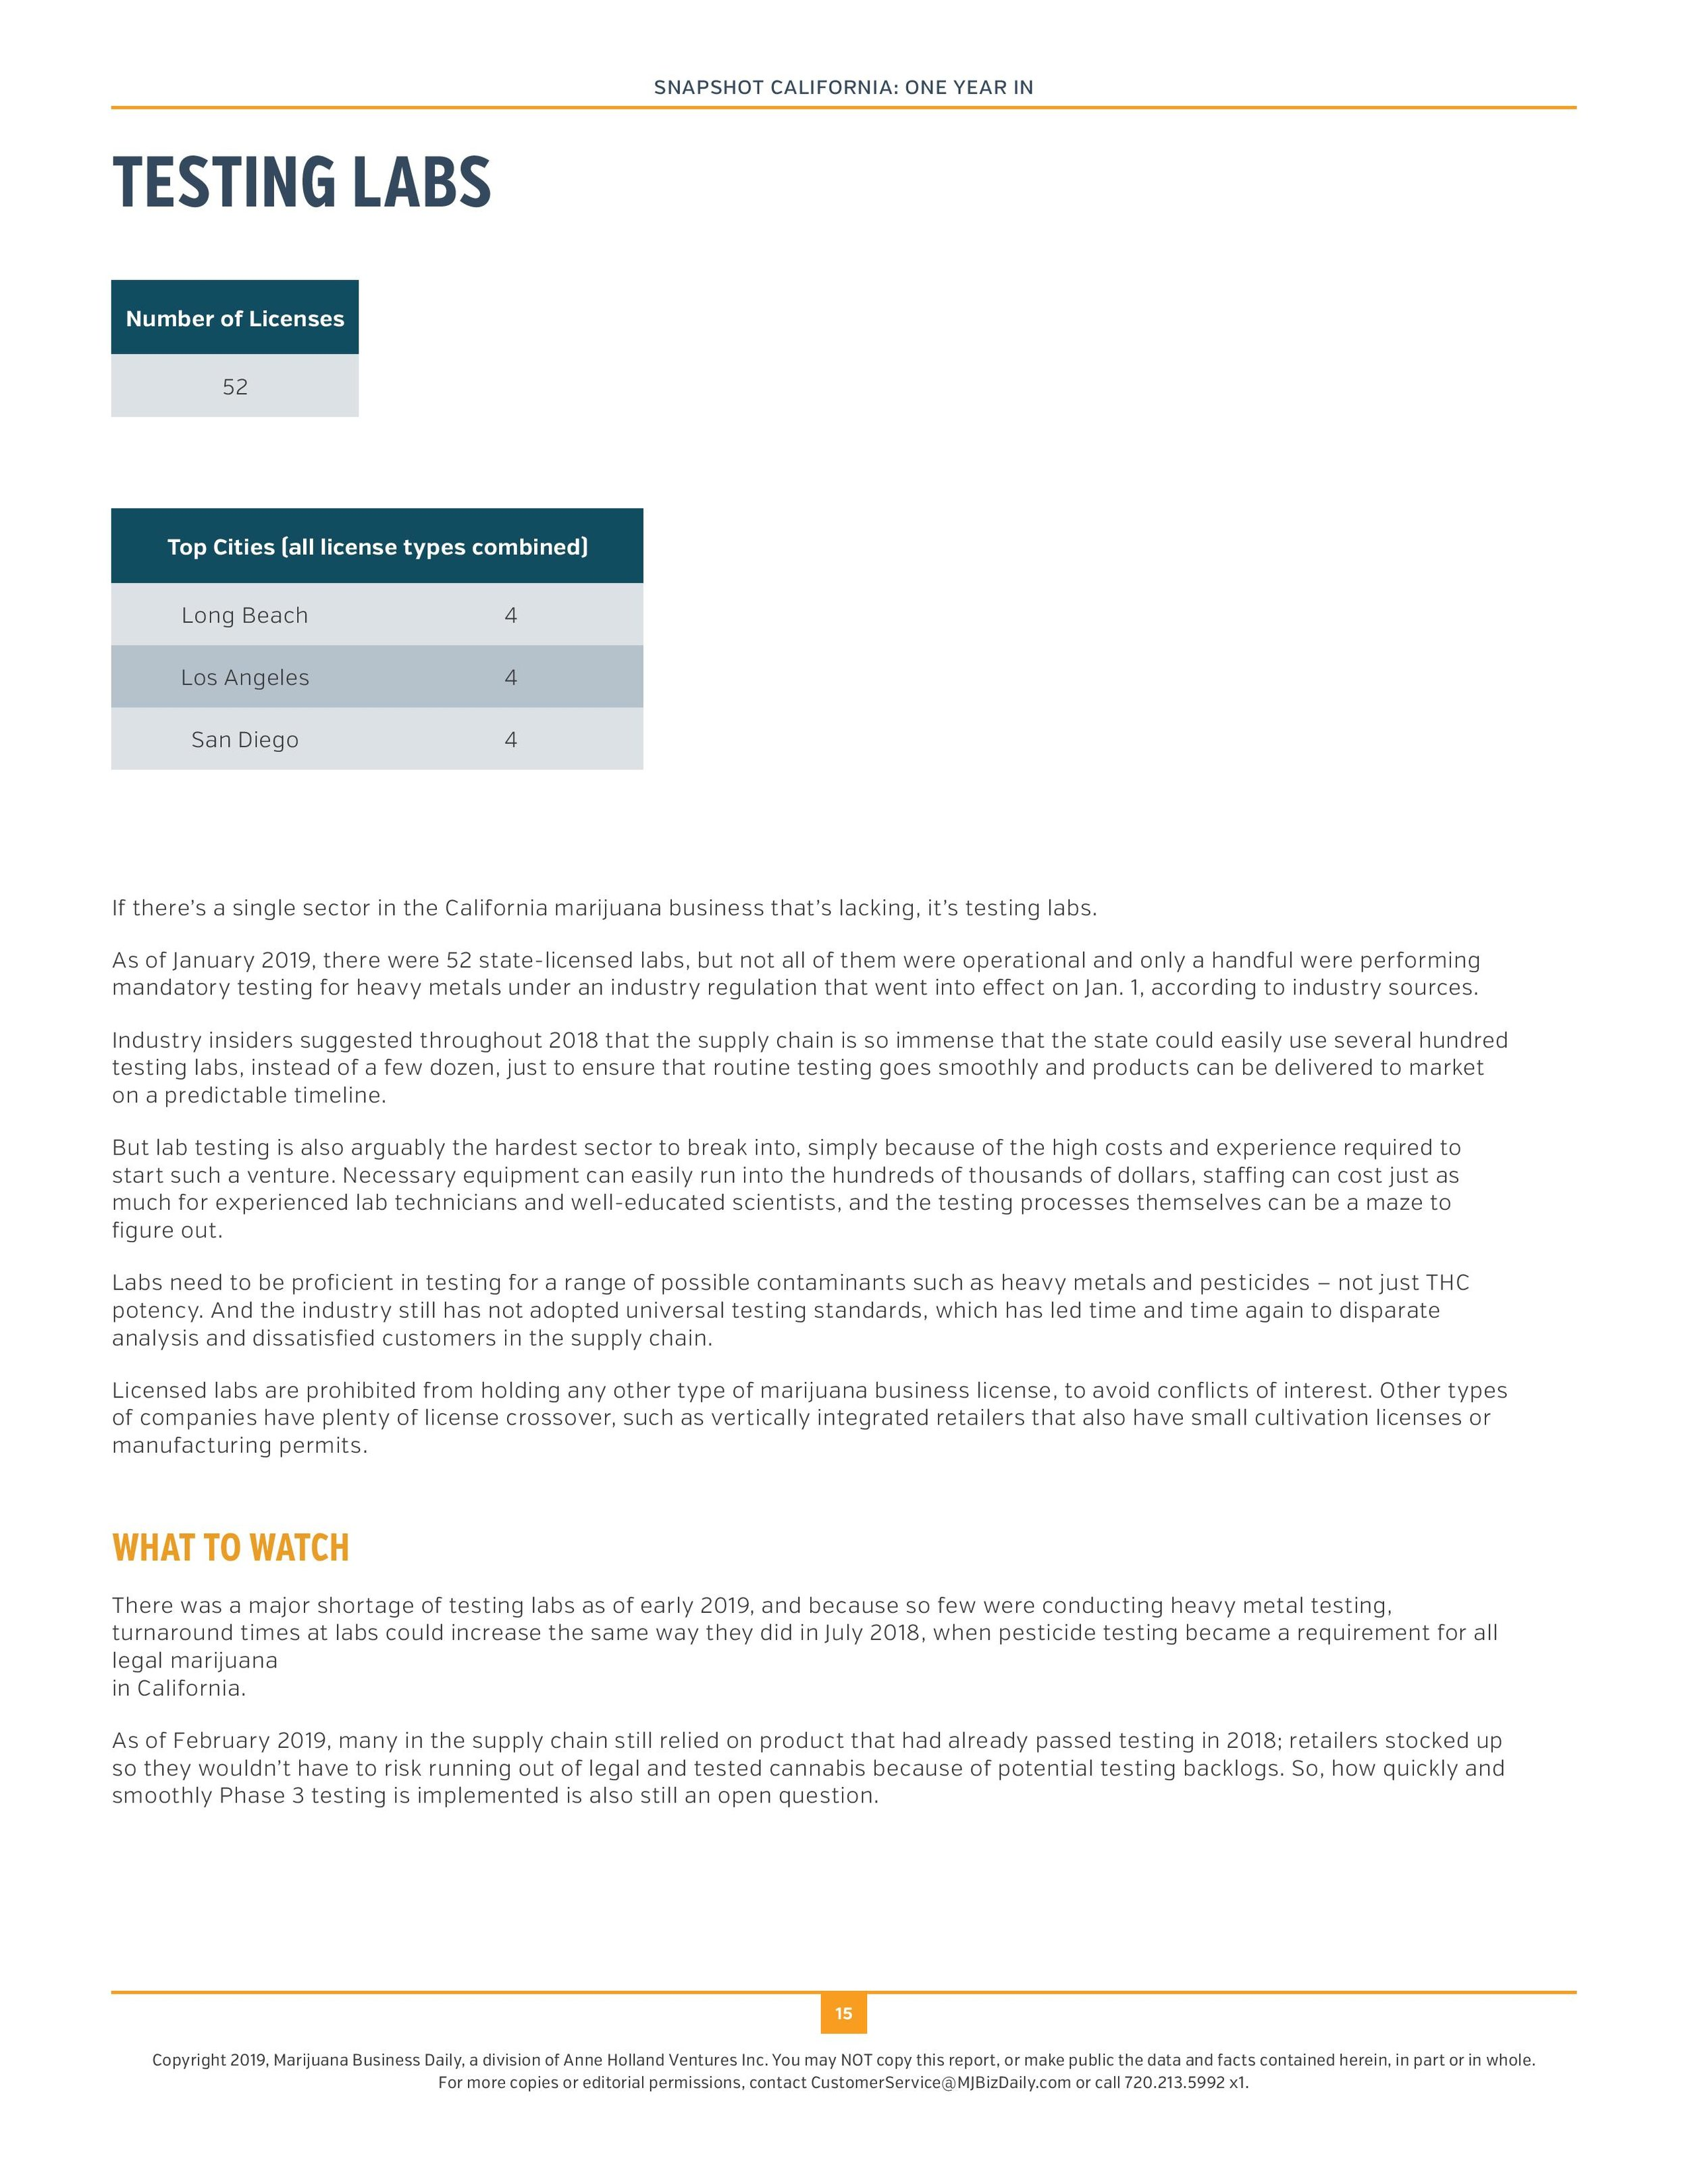 CA-one-year-report-FINAL-page-018.jpg